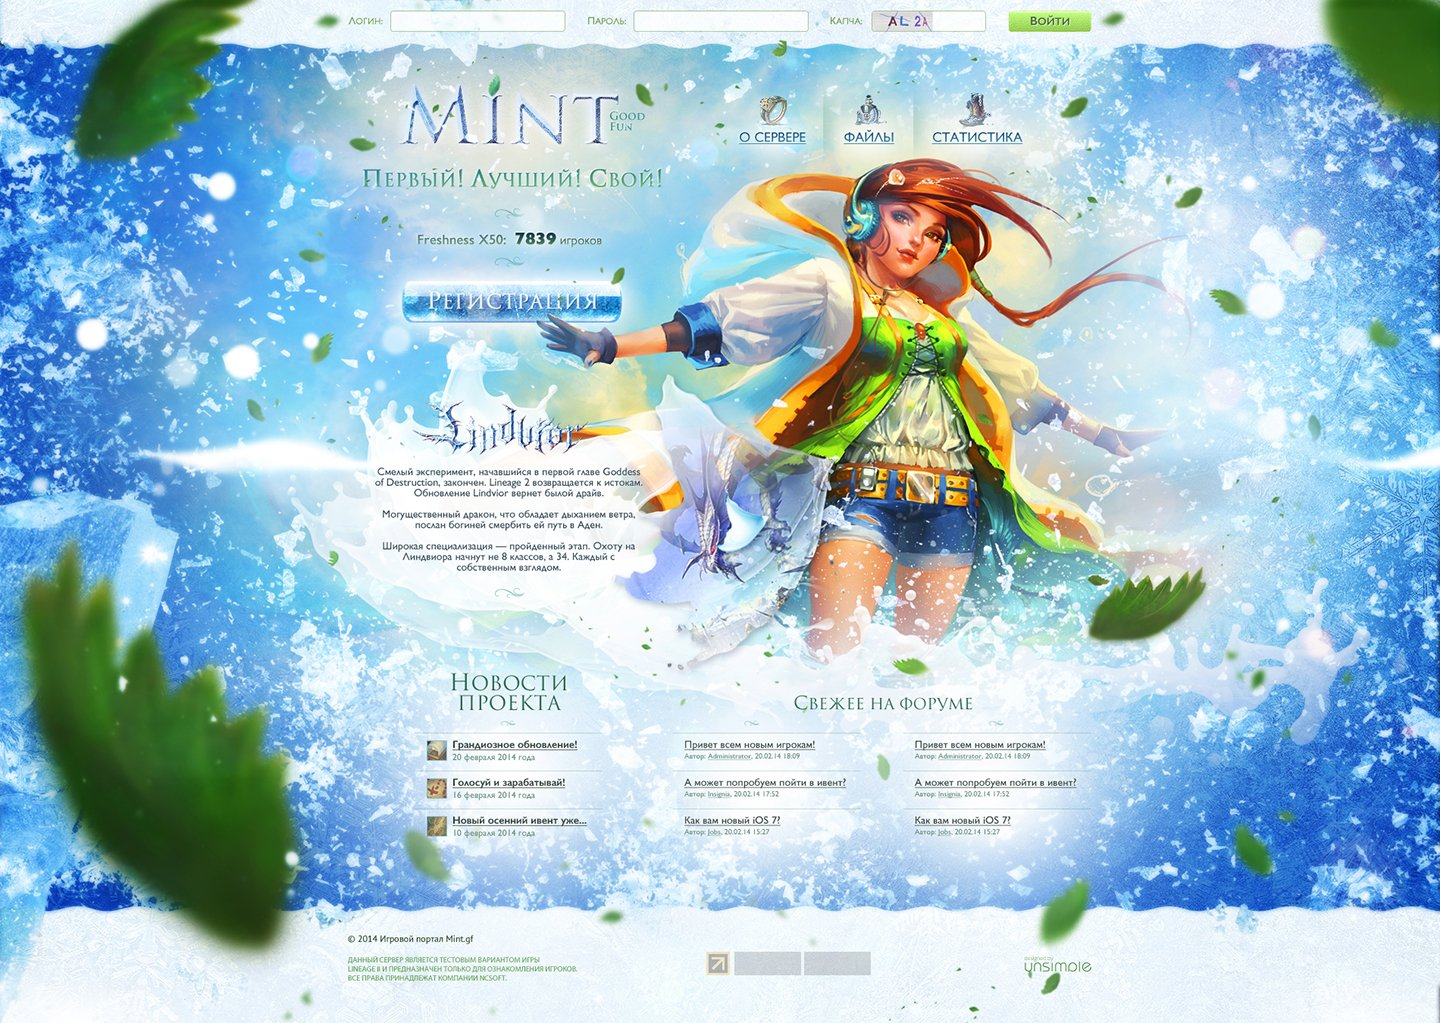 Mint.gf > Website design for Lineage 2 private server. Main page